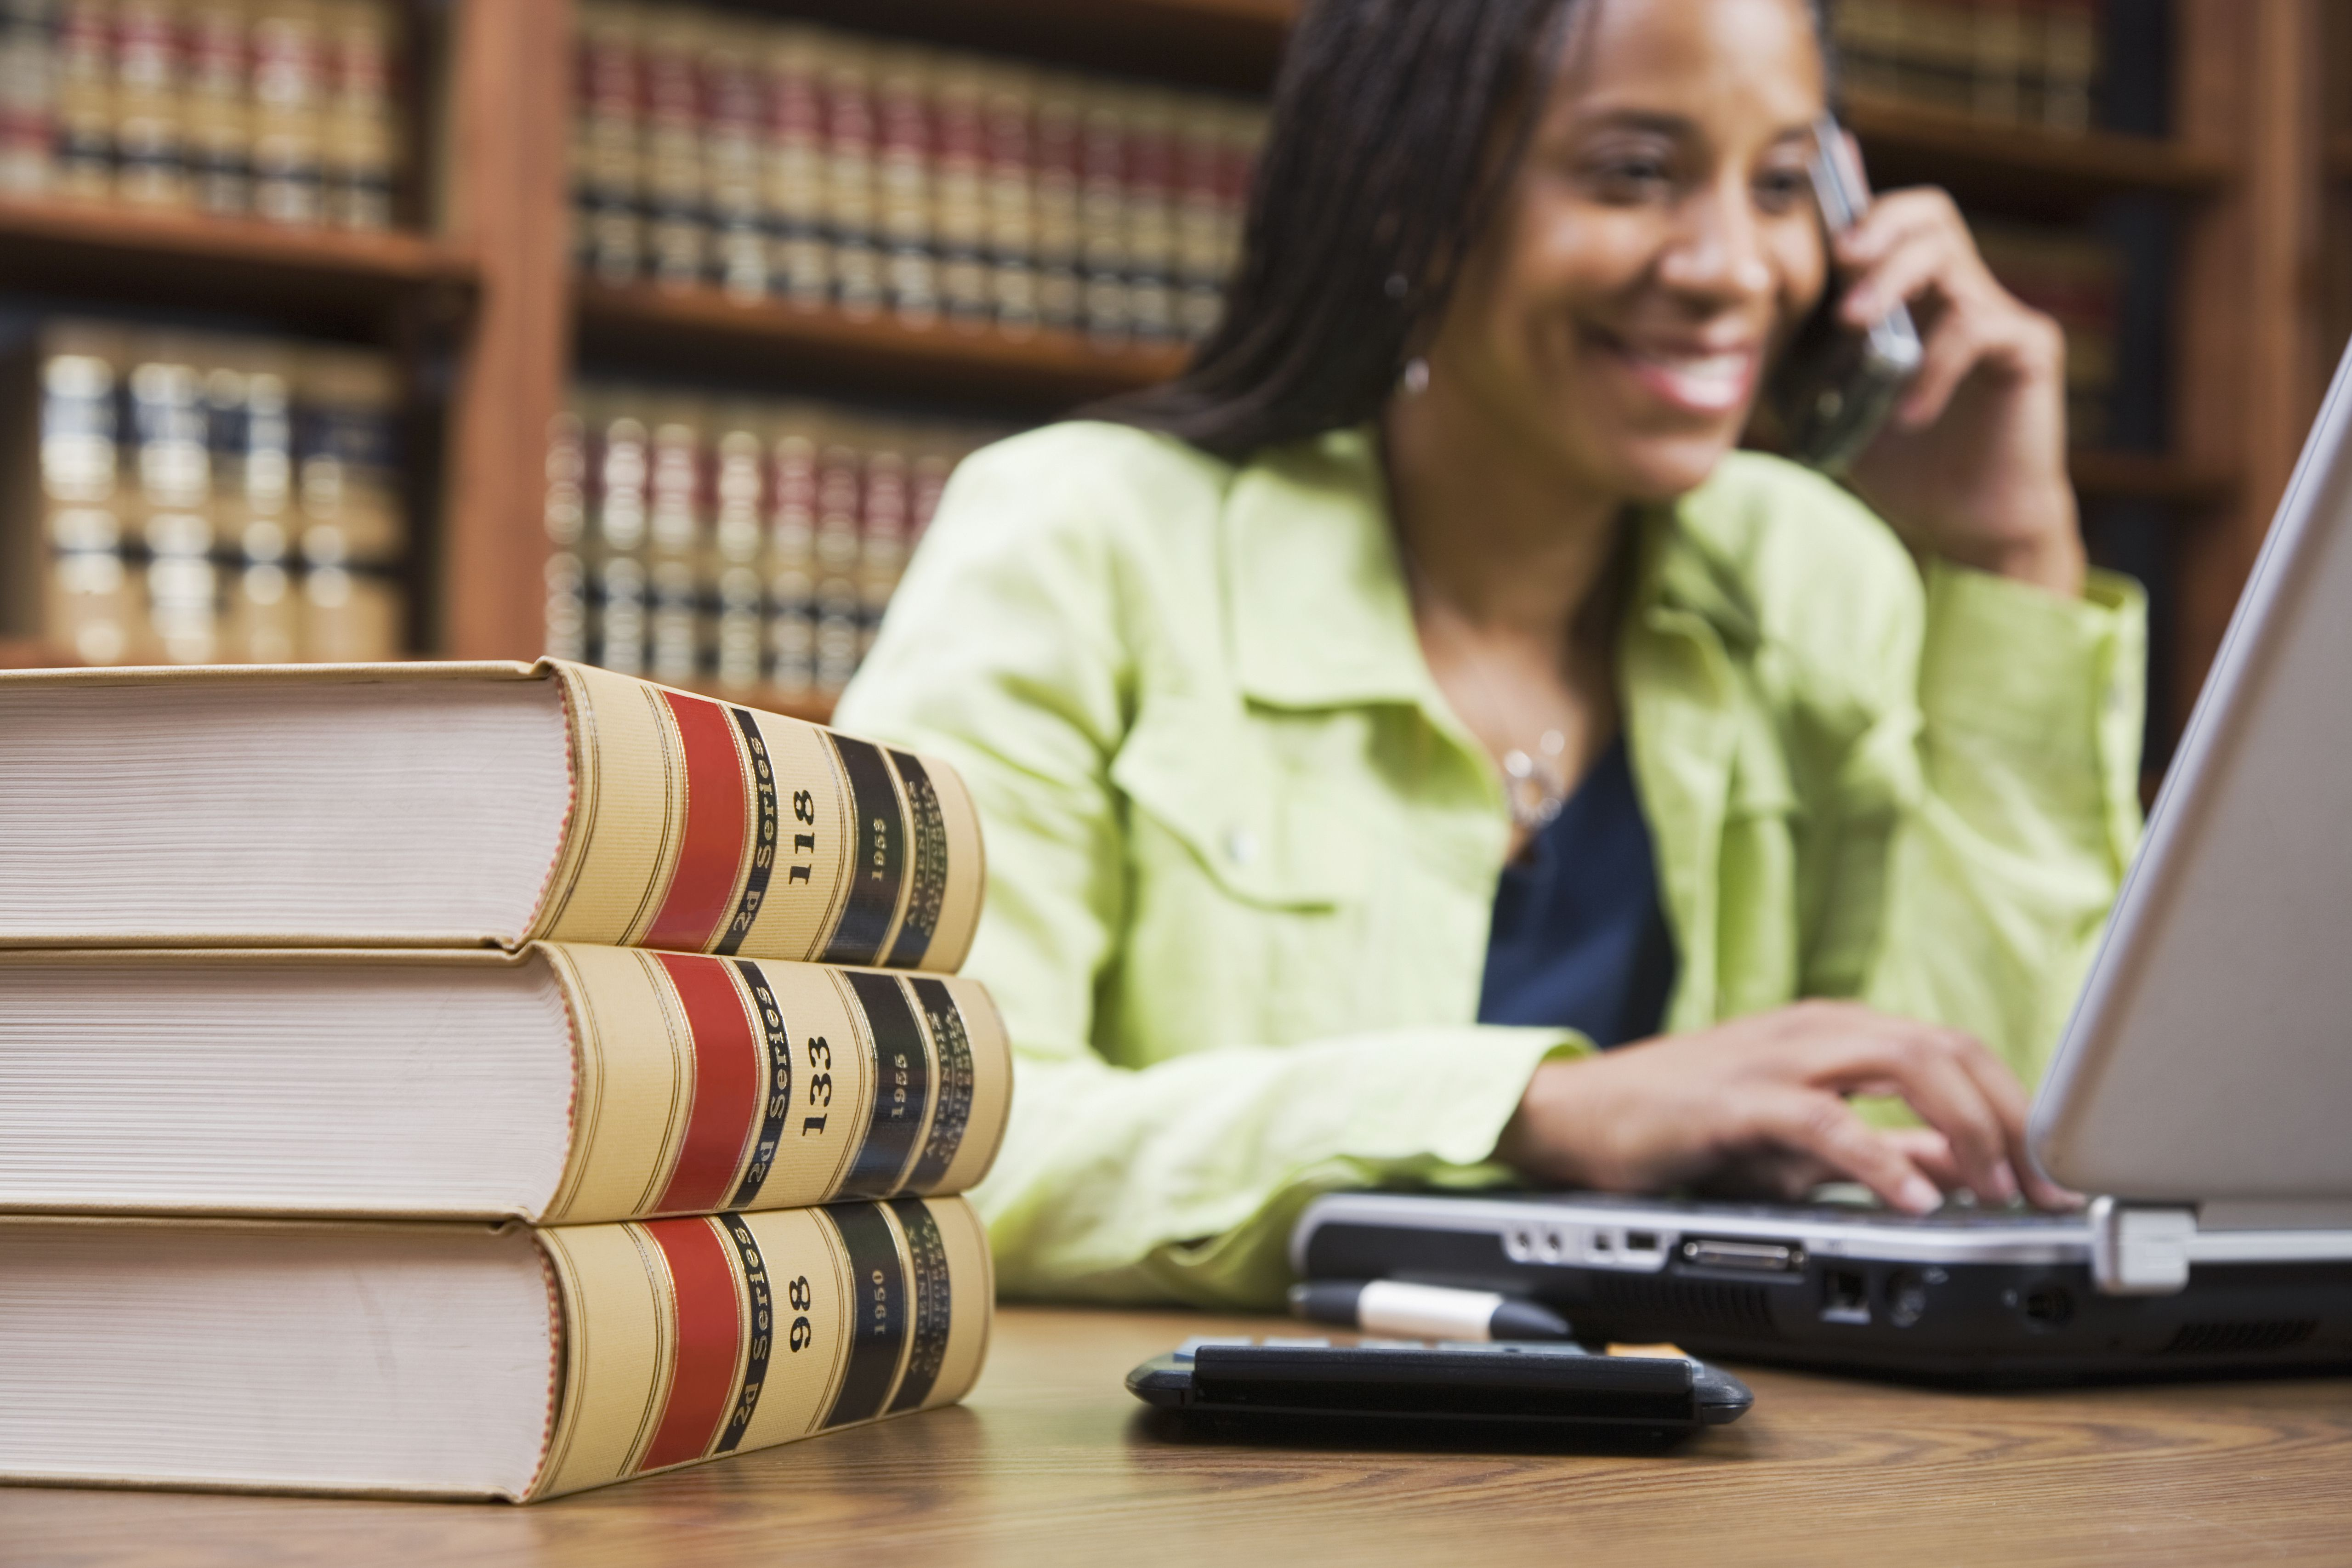 Paralegal interviewing a witness by phone